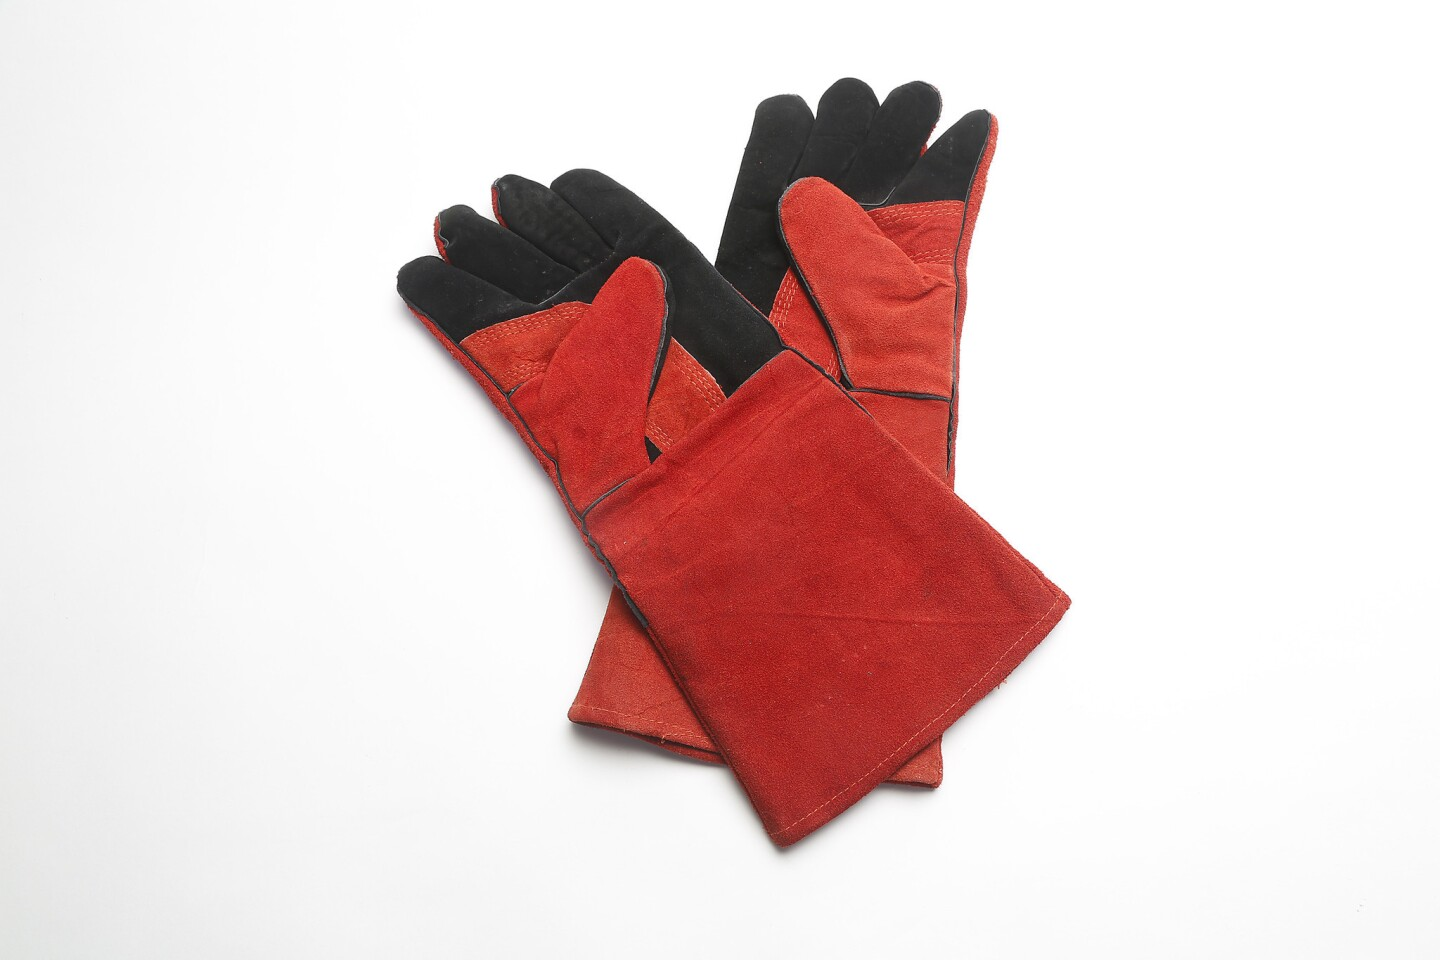 Fireproof gloves can handle the heat.